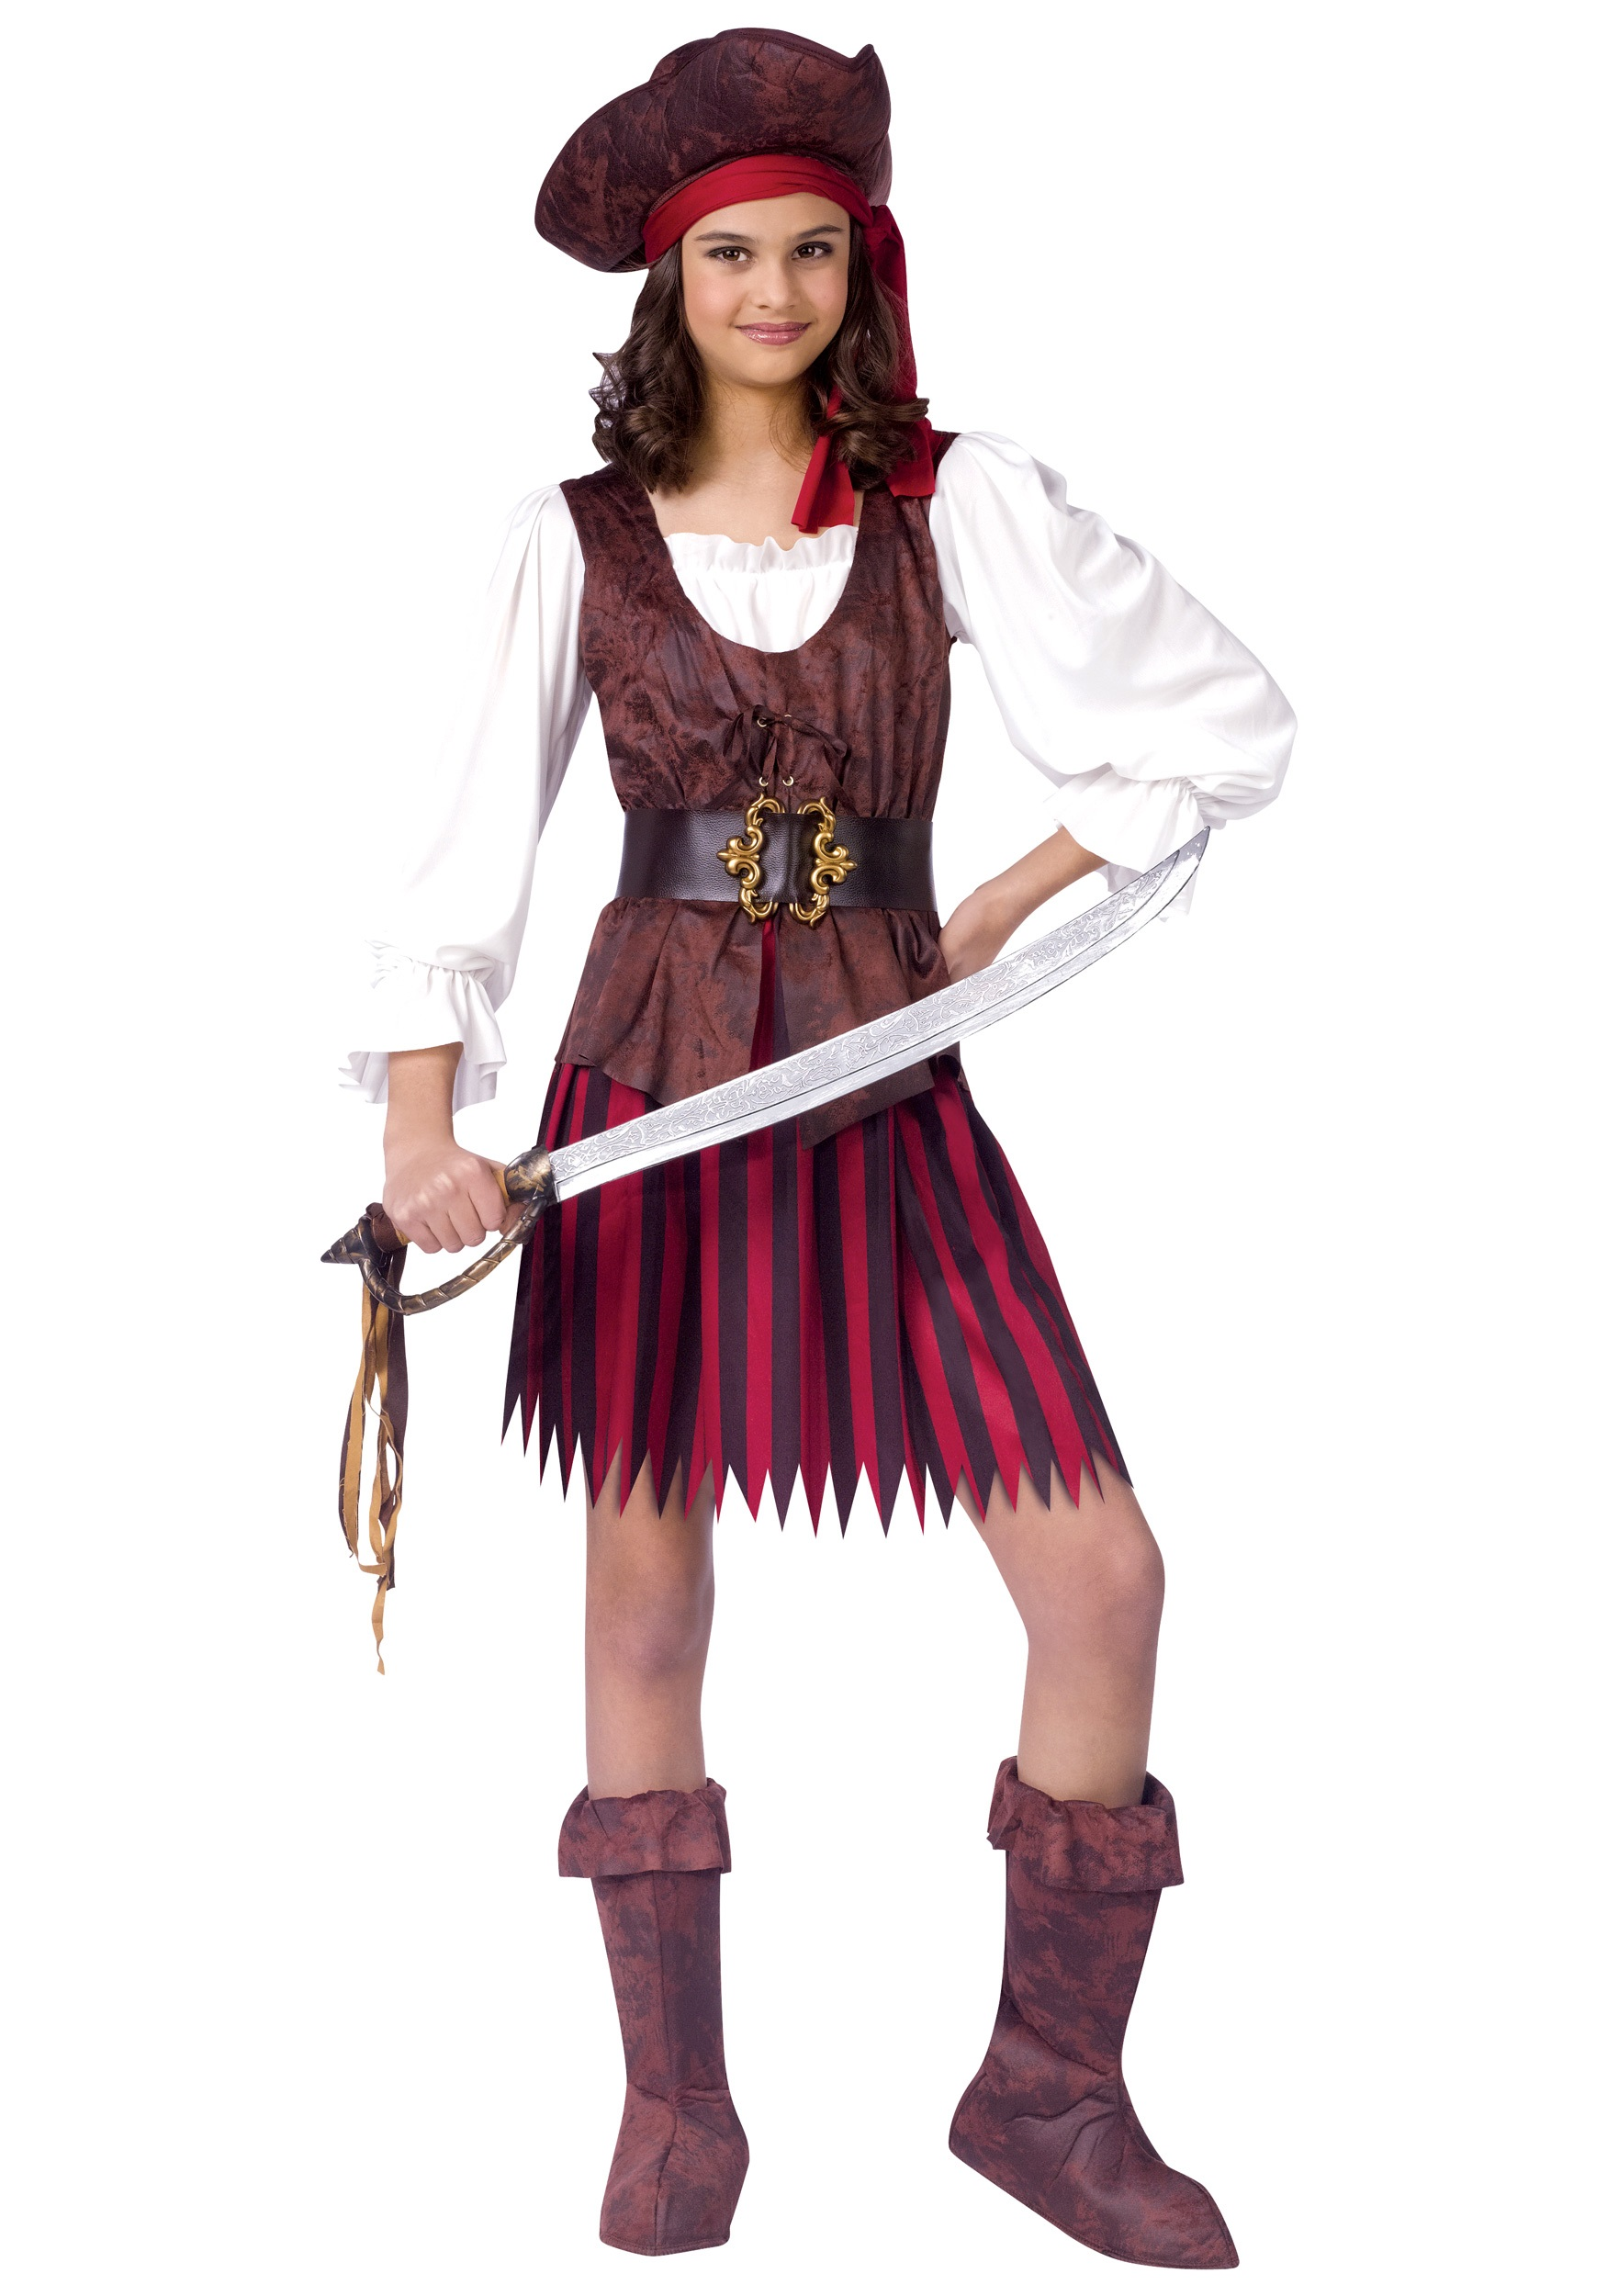 High Seas Pirate Girl Costume 3e1e3d445411